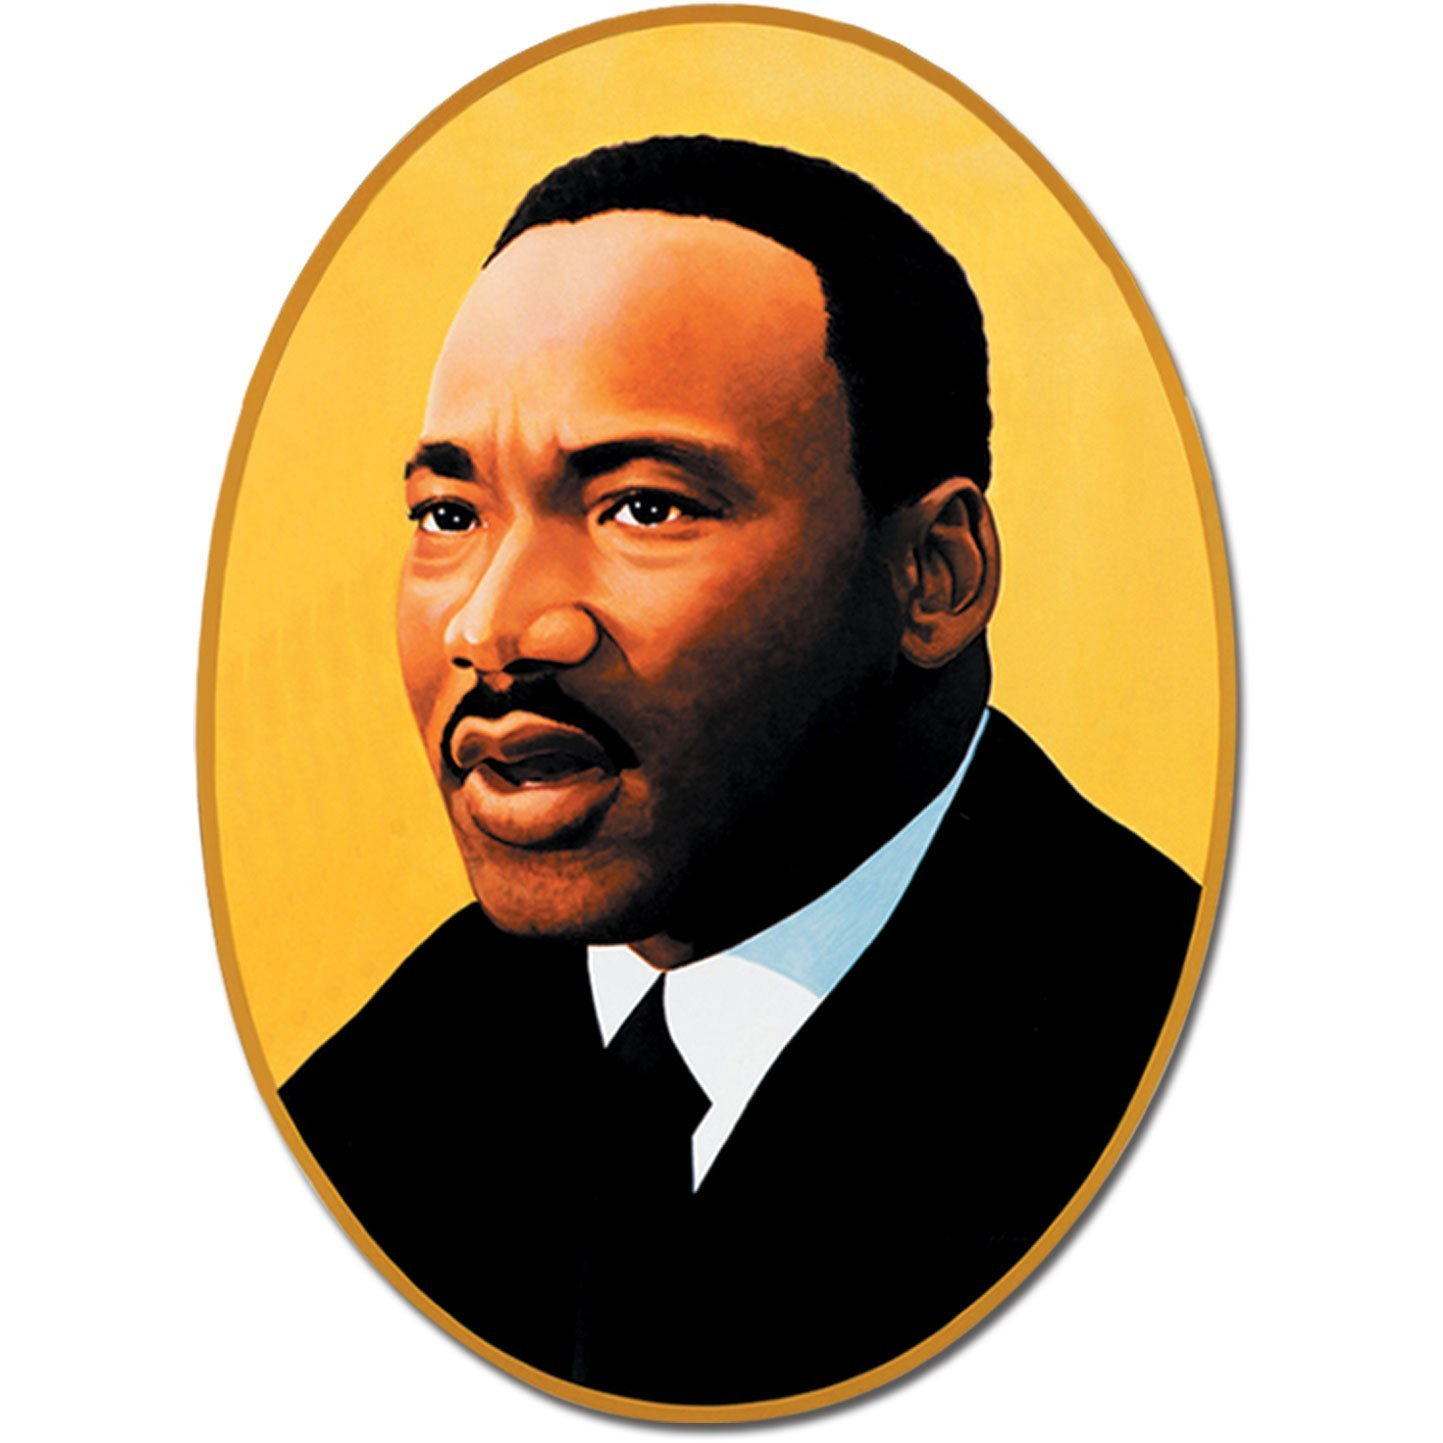 Martin luther clipart icon. Getdrawings com cliparts mlk